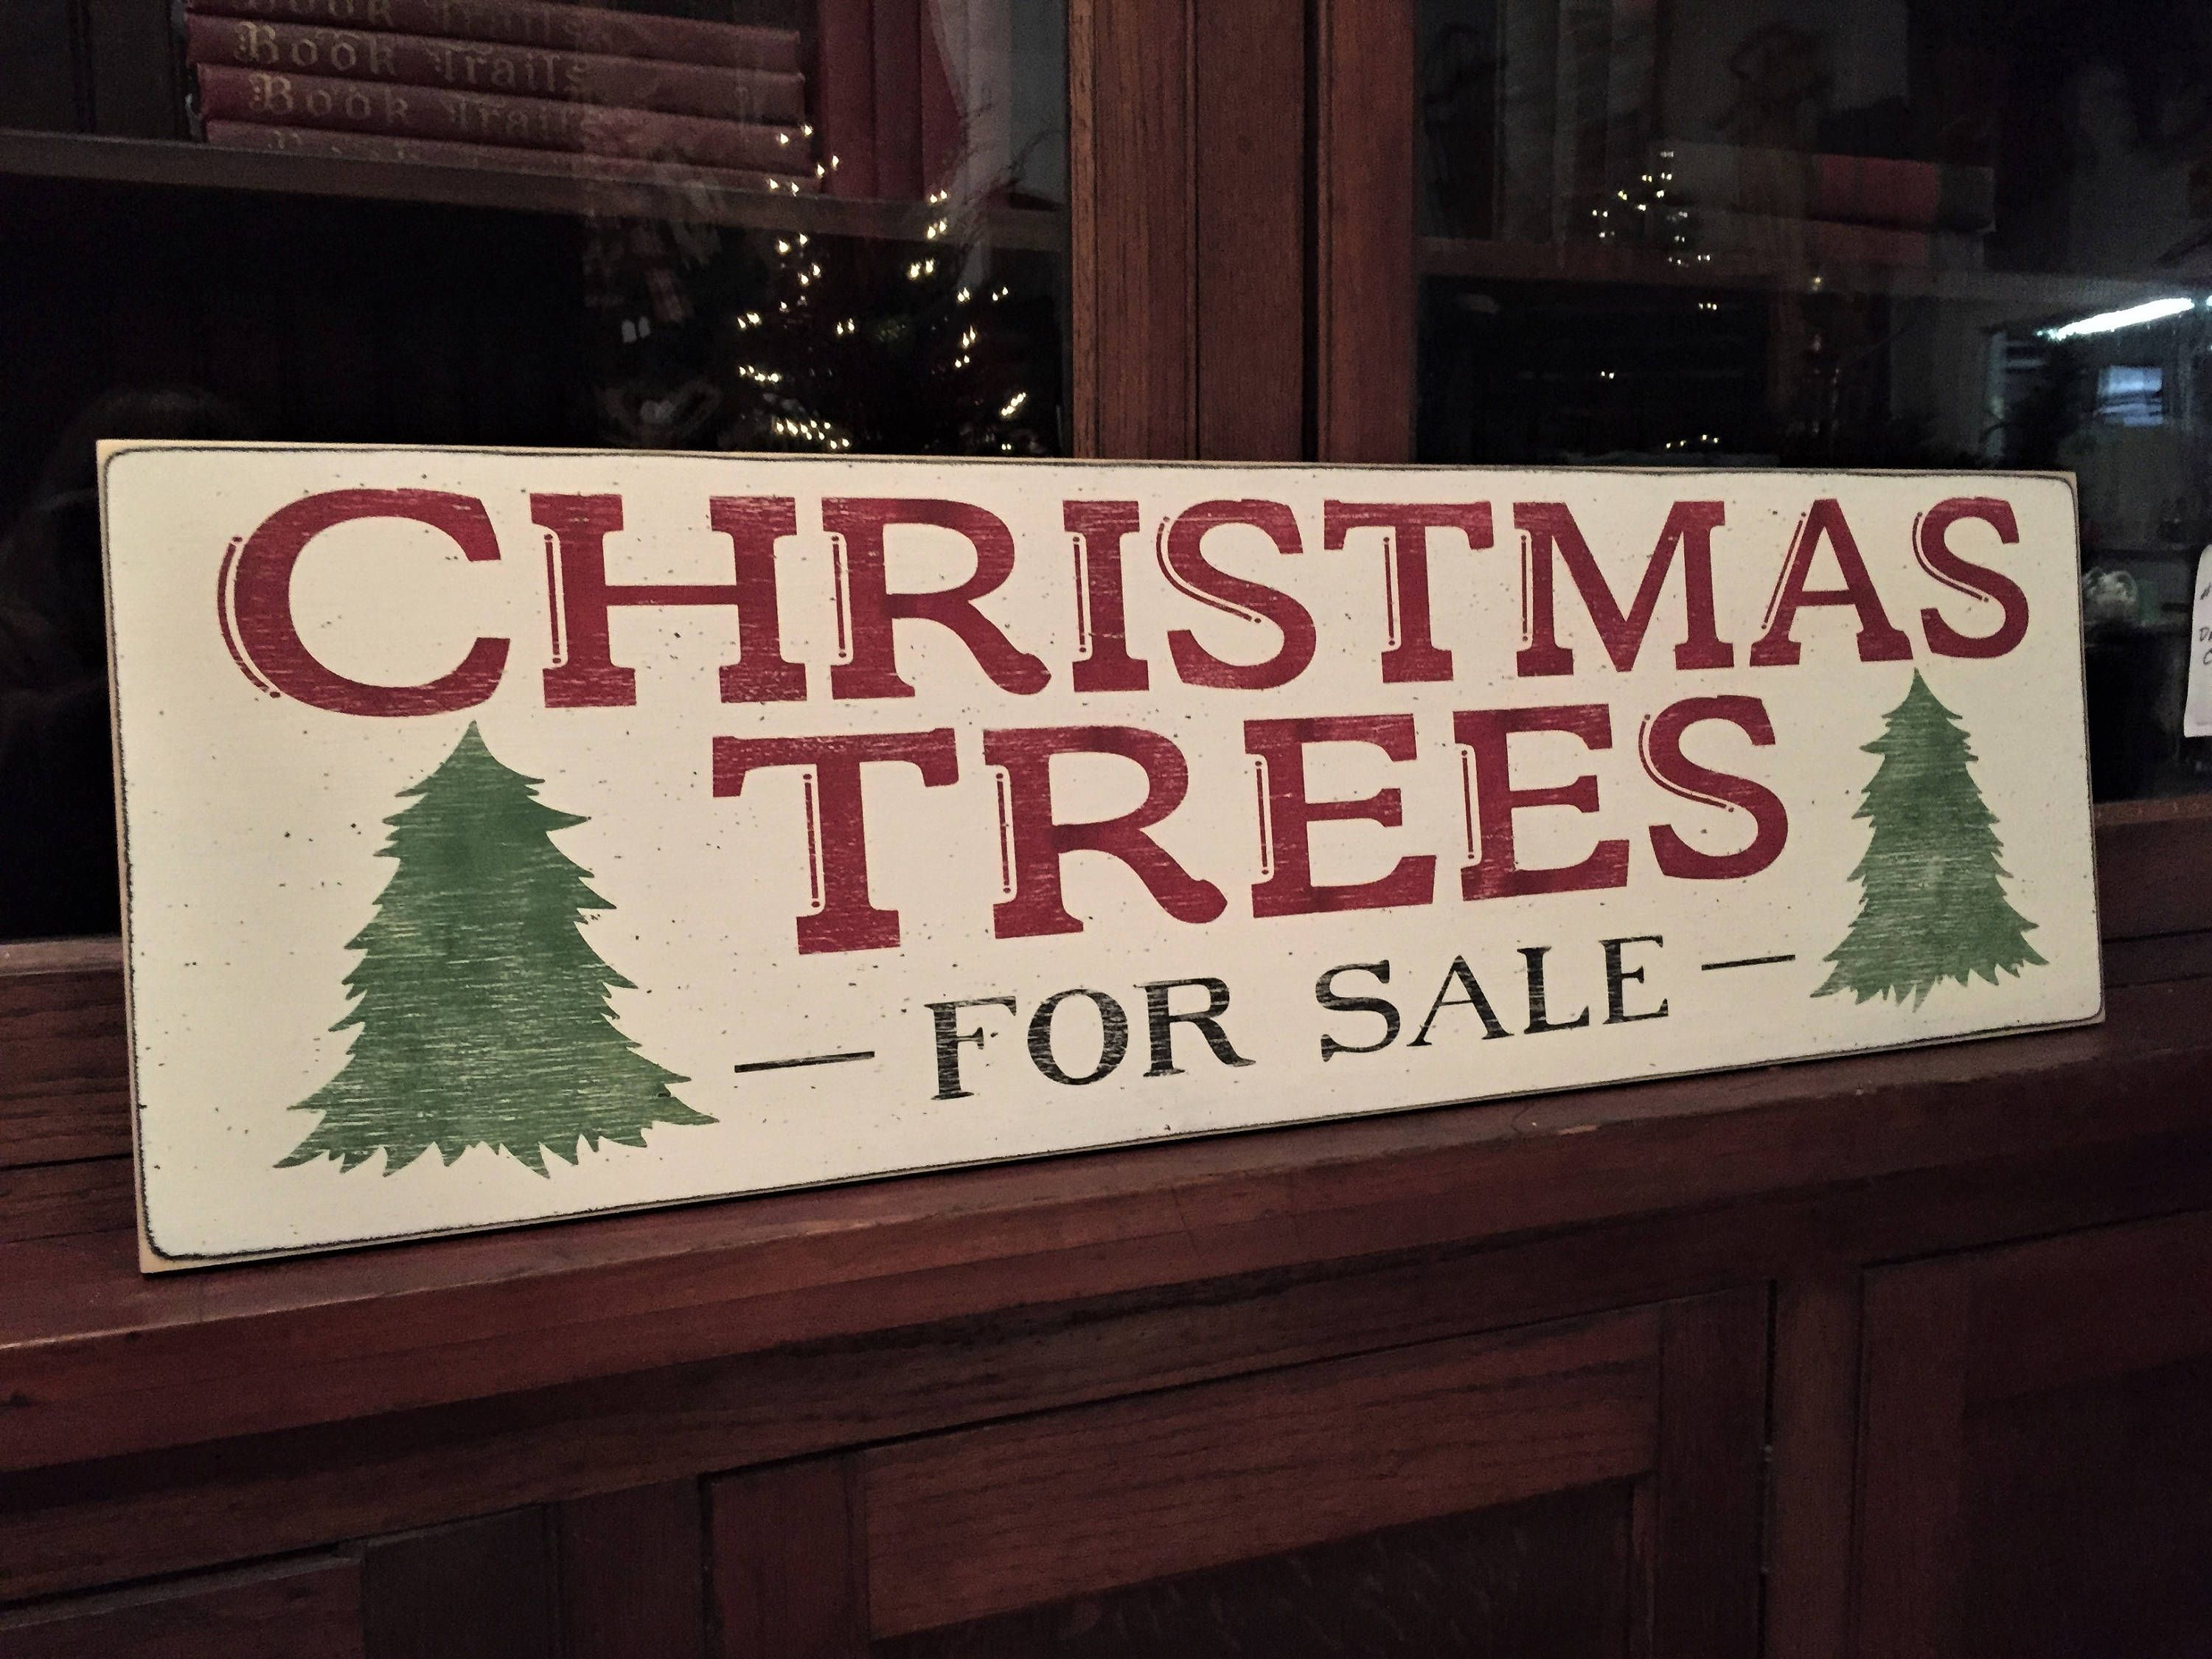 christmas trees for sale sign christmas farmhouse sign rustic fixer upper christmas christmas mantel decor large christmas sign 3ft long